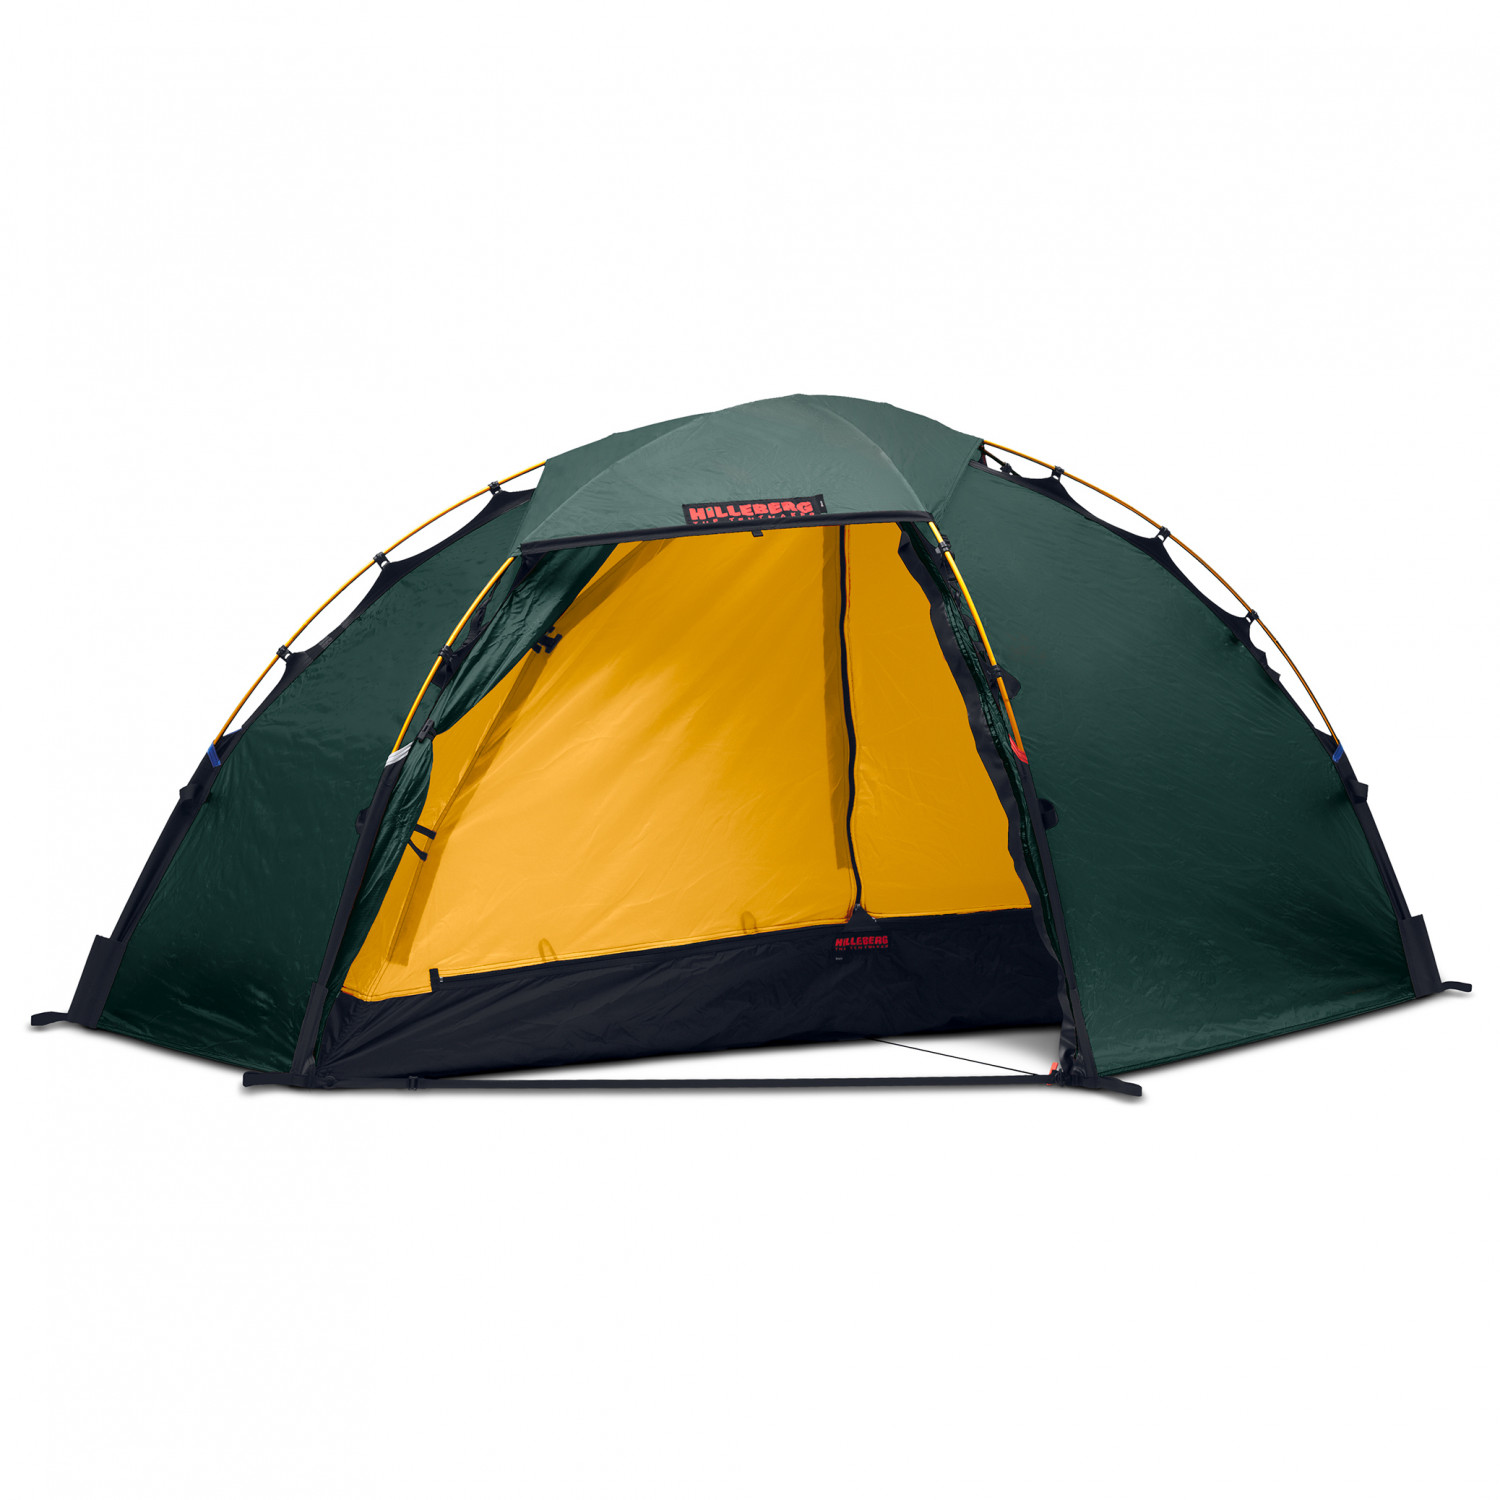 1 Person Tents : Hilleberg soulo person tent free uk delivery